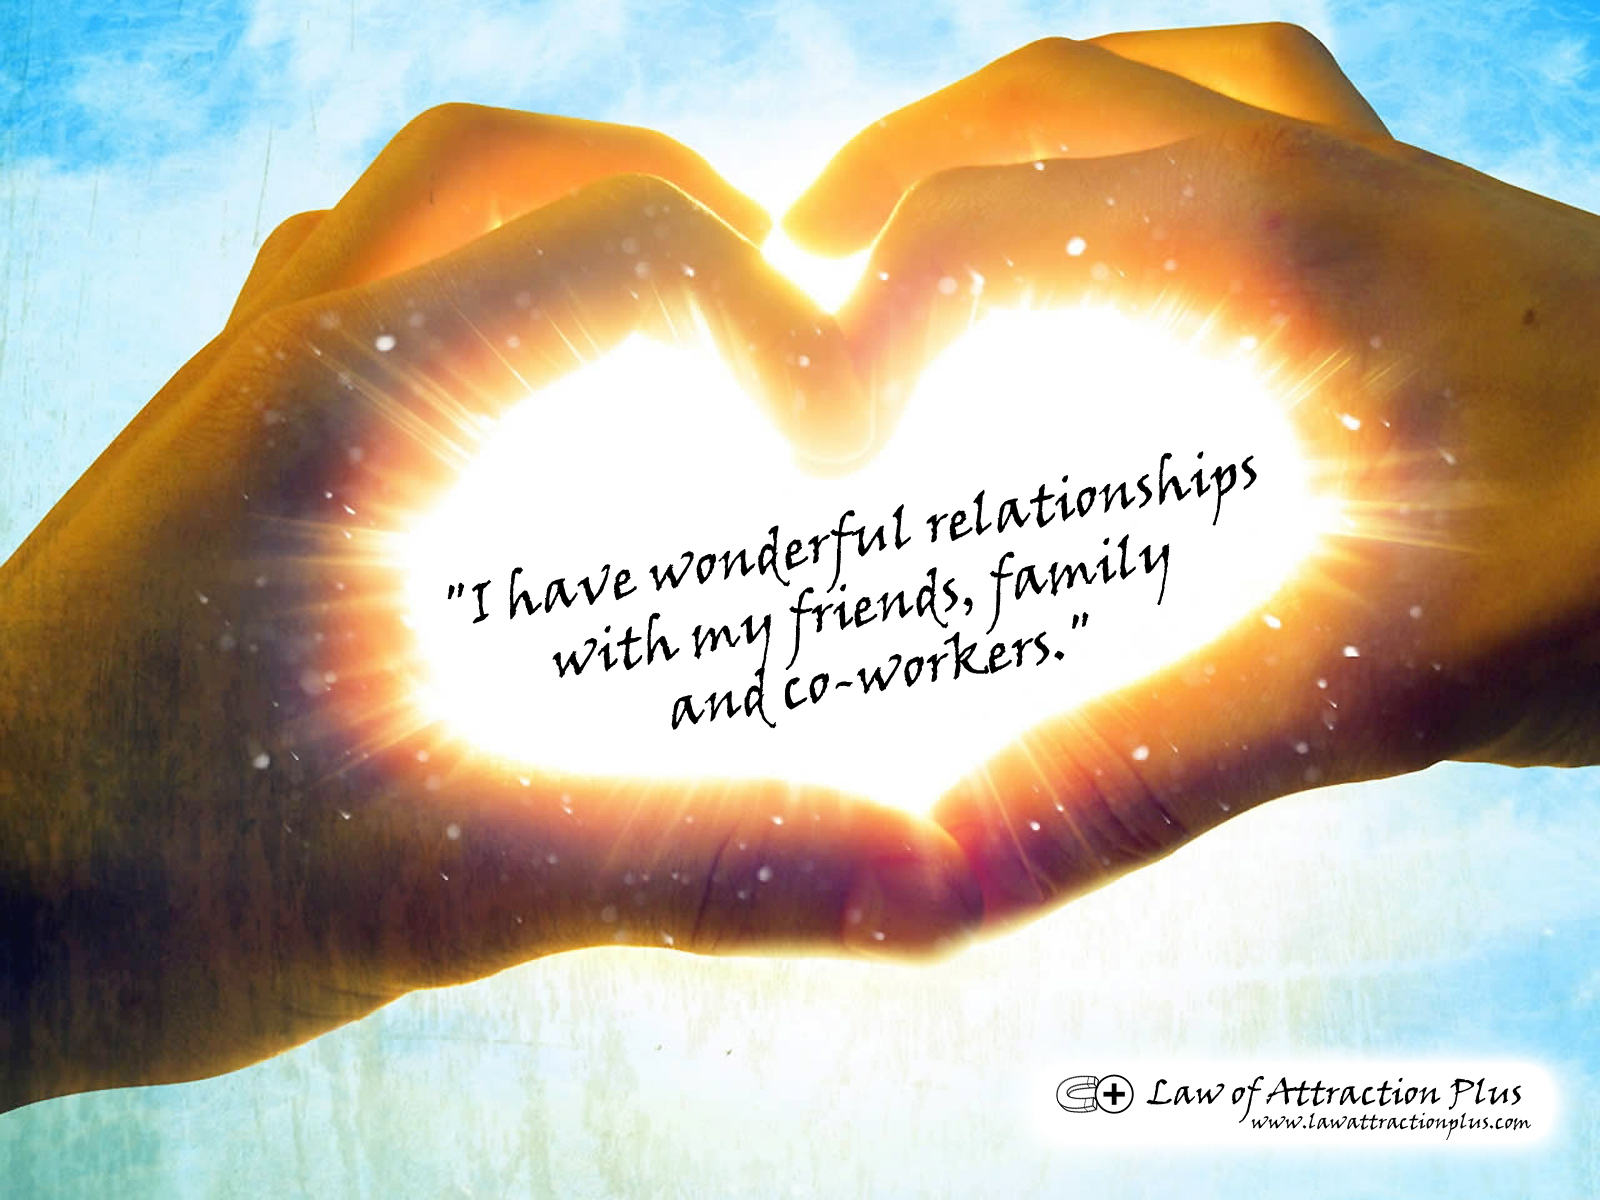 """""""I have wonderful relationships with my friends, family ..."""